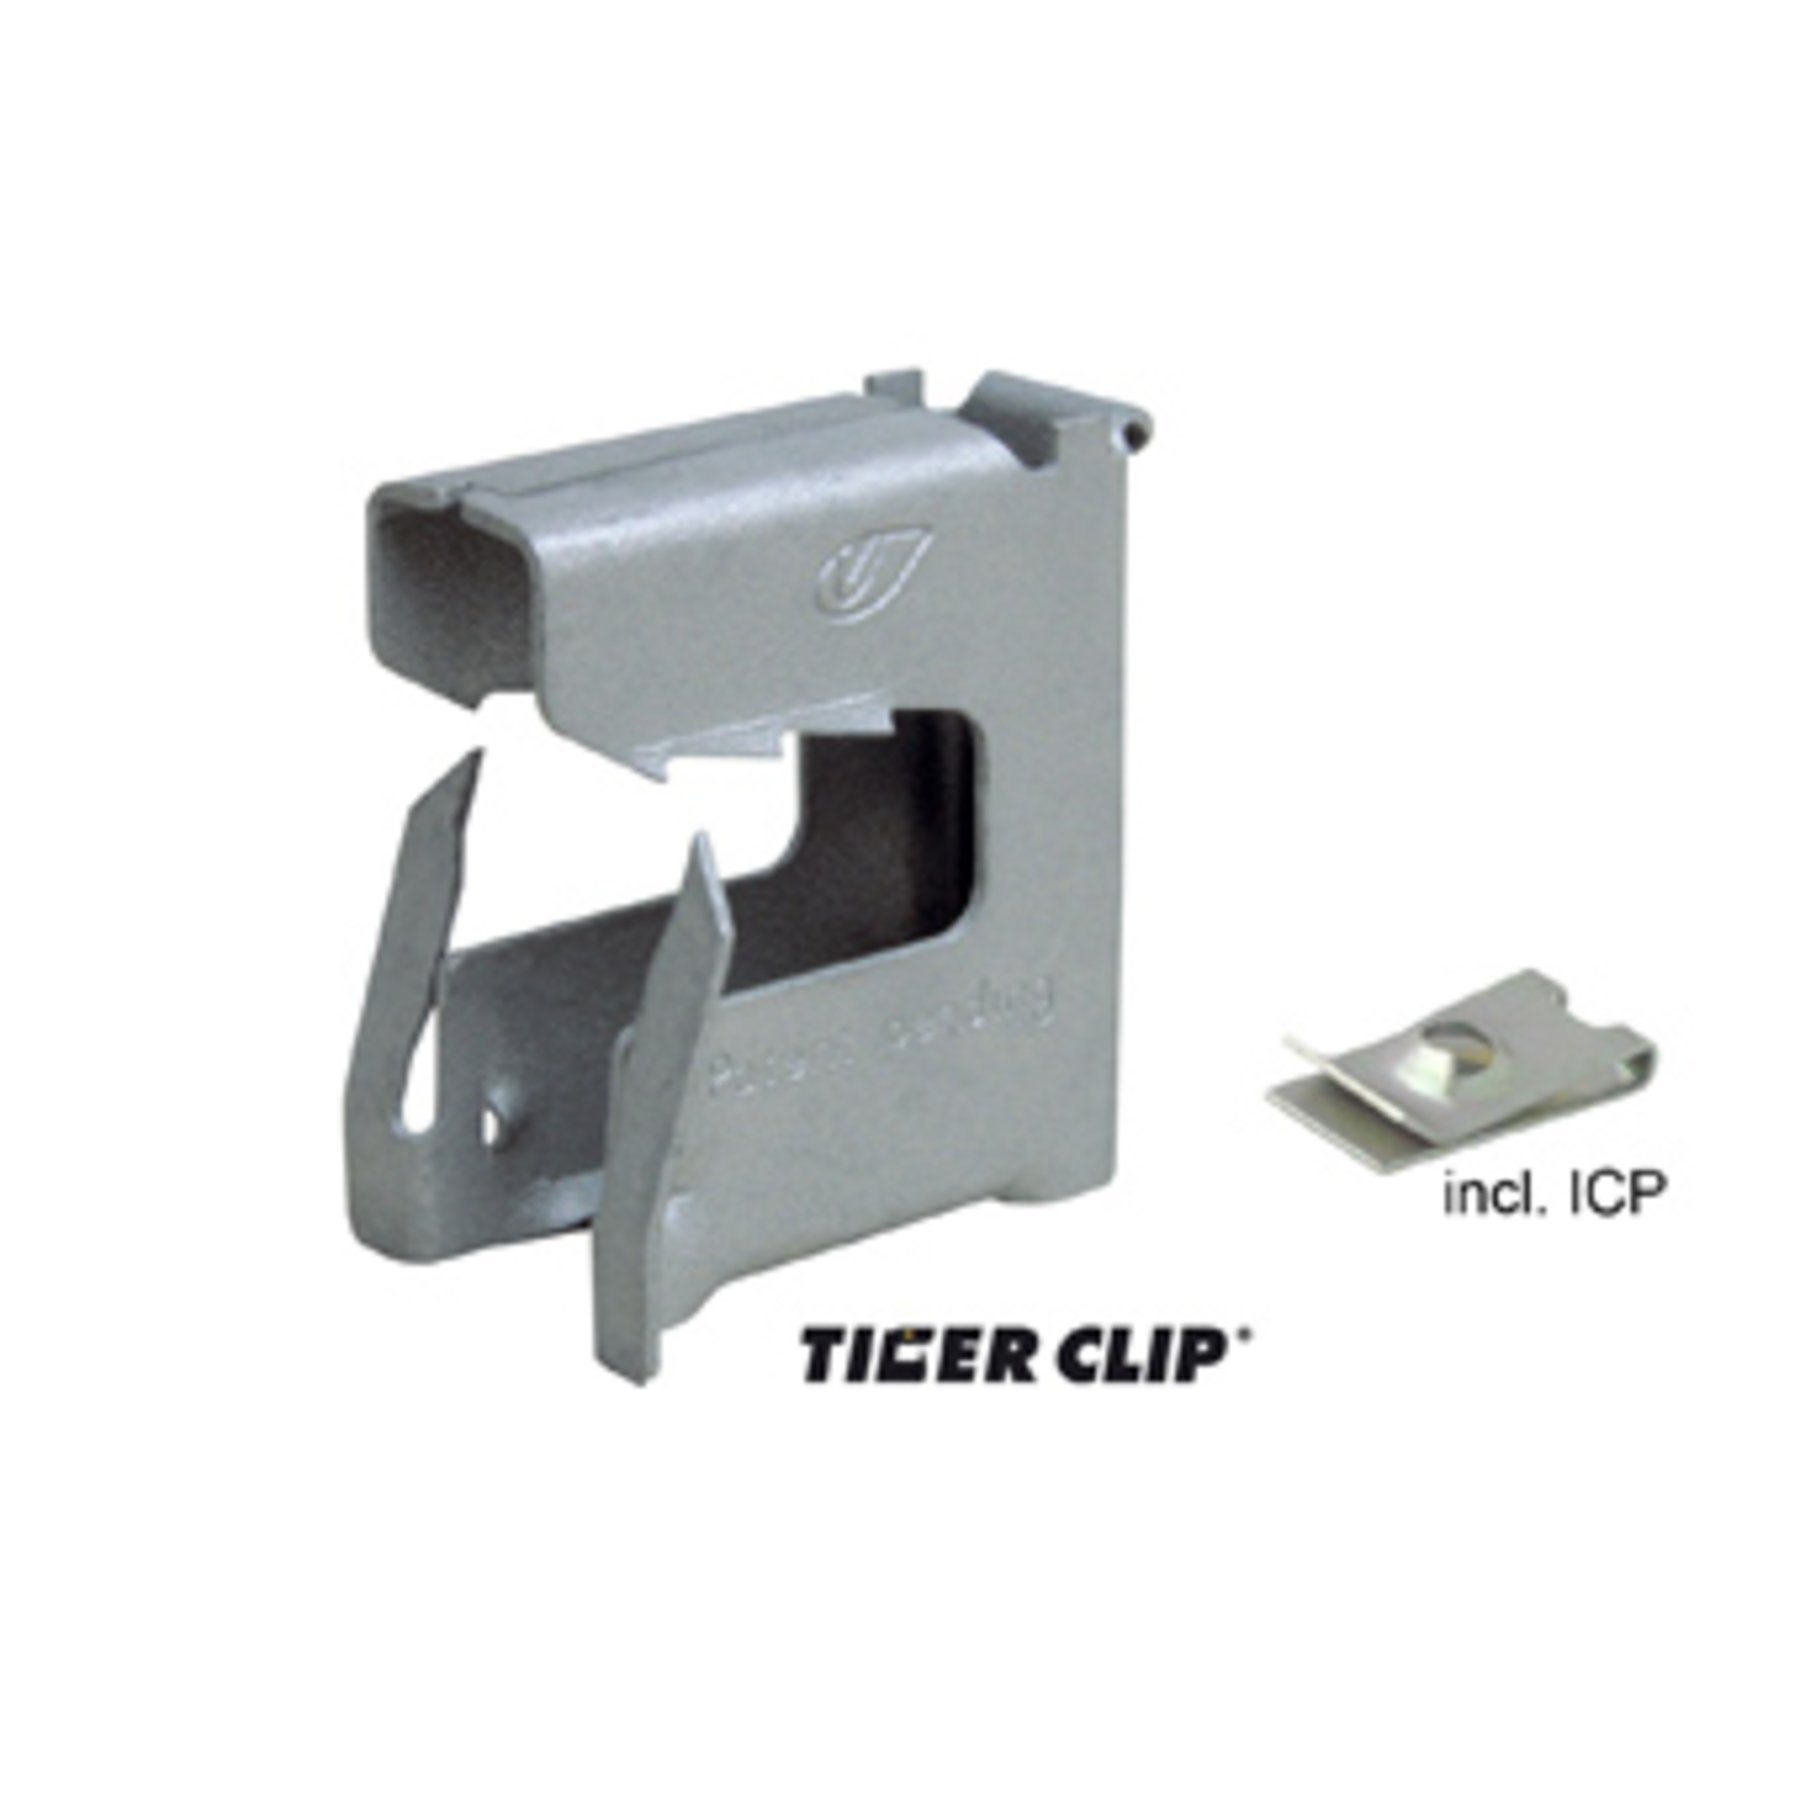 Walraven BISCLIPS® Tigerclip 8 16mm